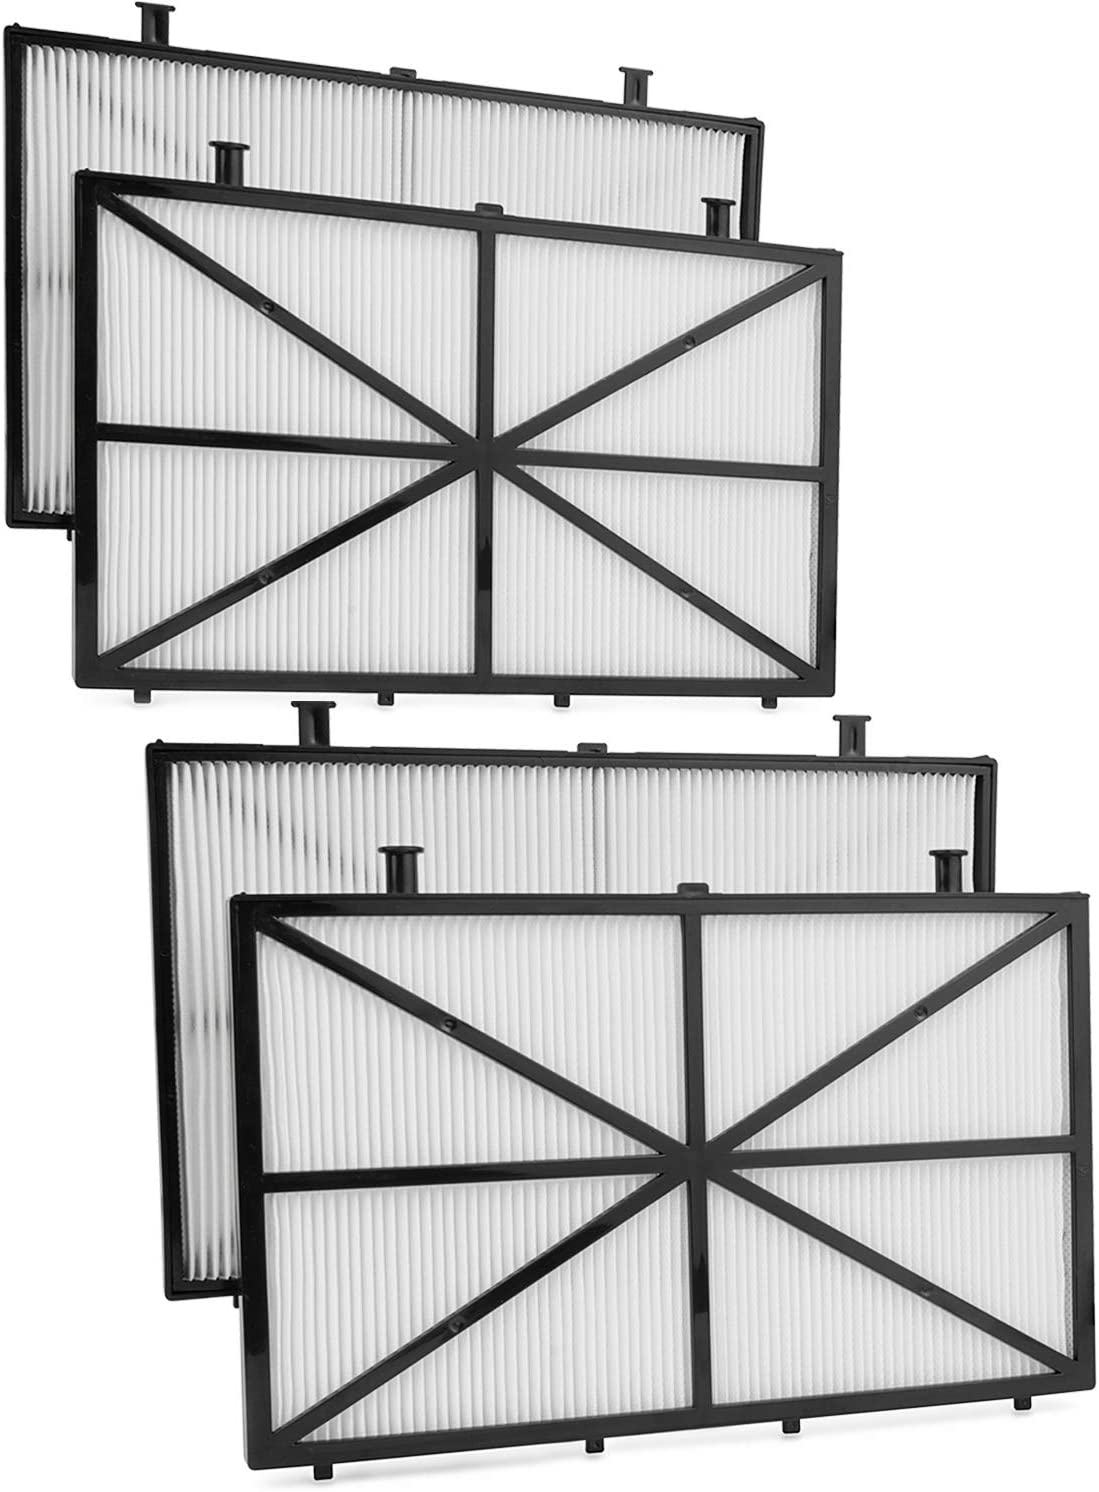 FutureWay Ultra-Fine Filter Compatible with Dolphin m400, m500, and Nautilus CC Plus, 4-Pack Robotic Pool Cleaner Filters Replacement Maytronics 9991432-R4